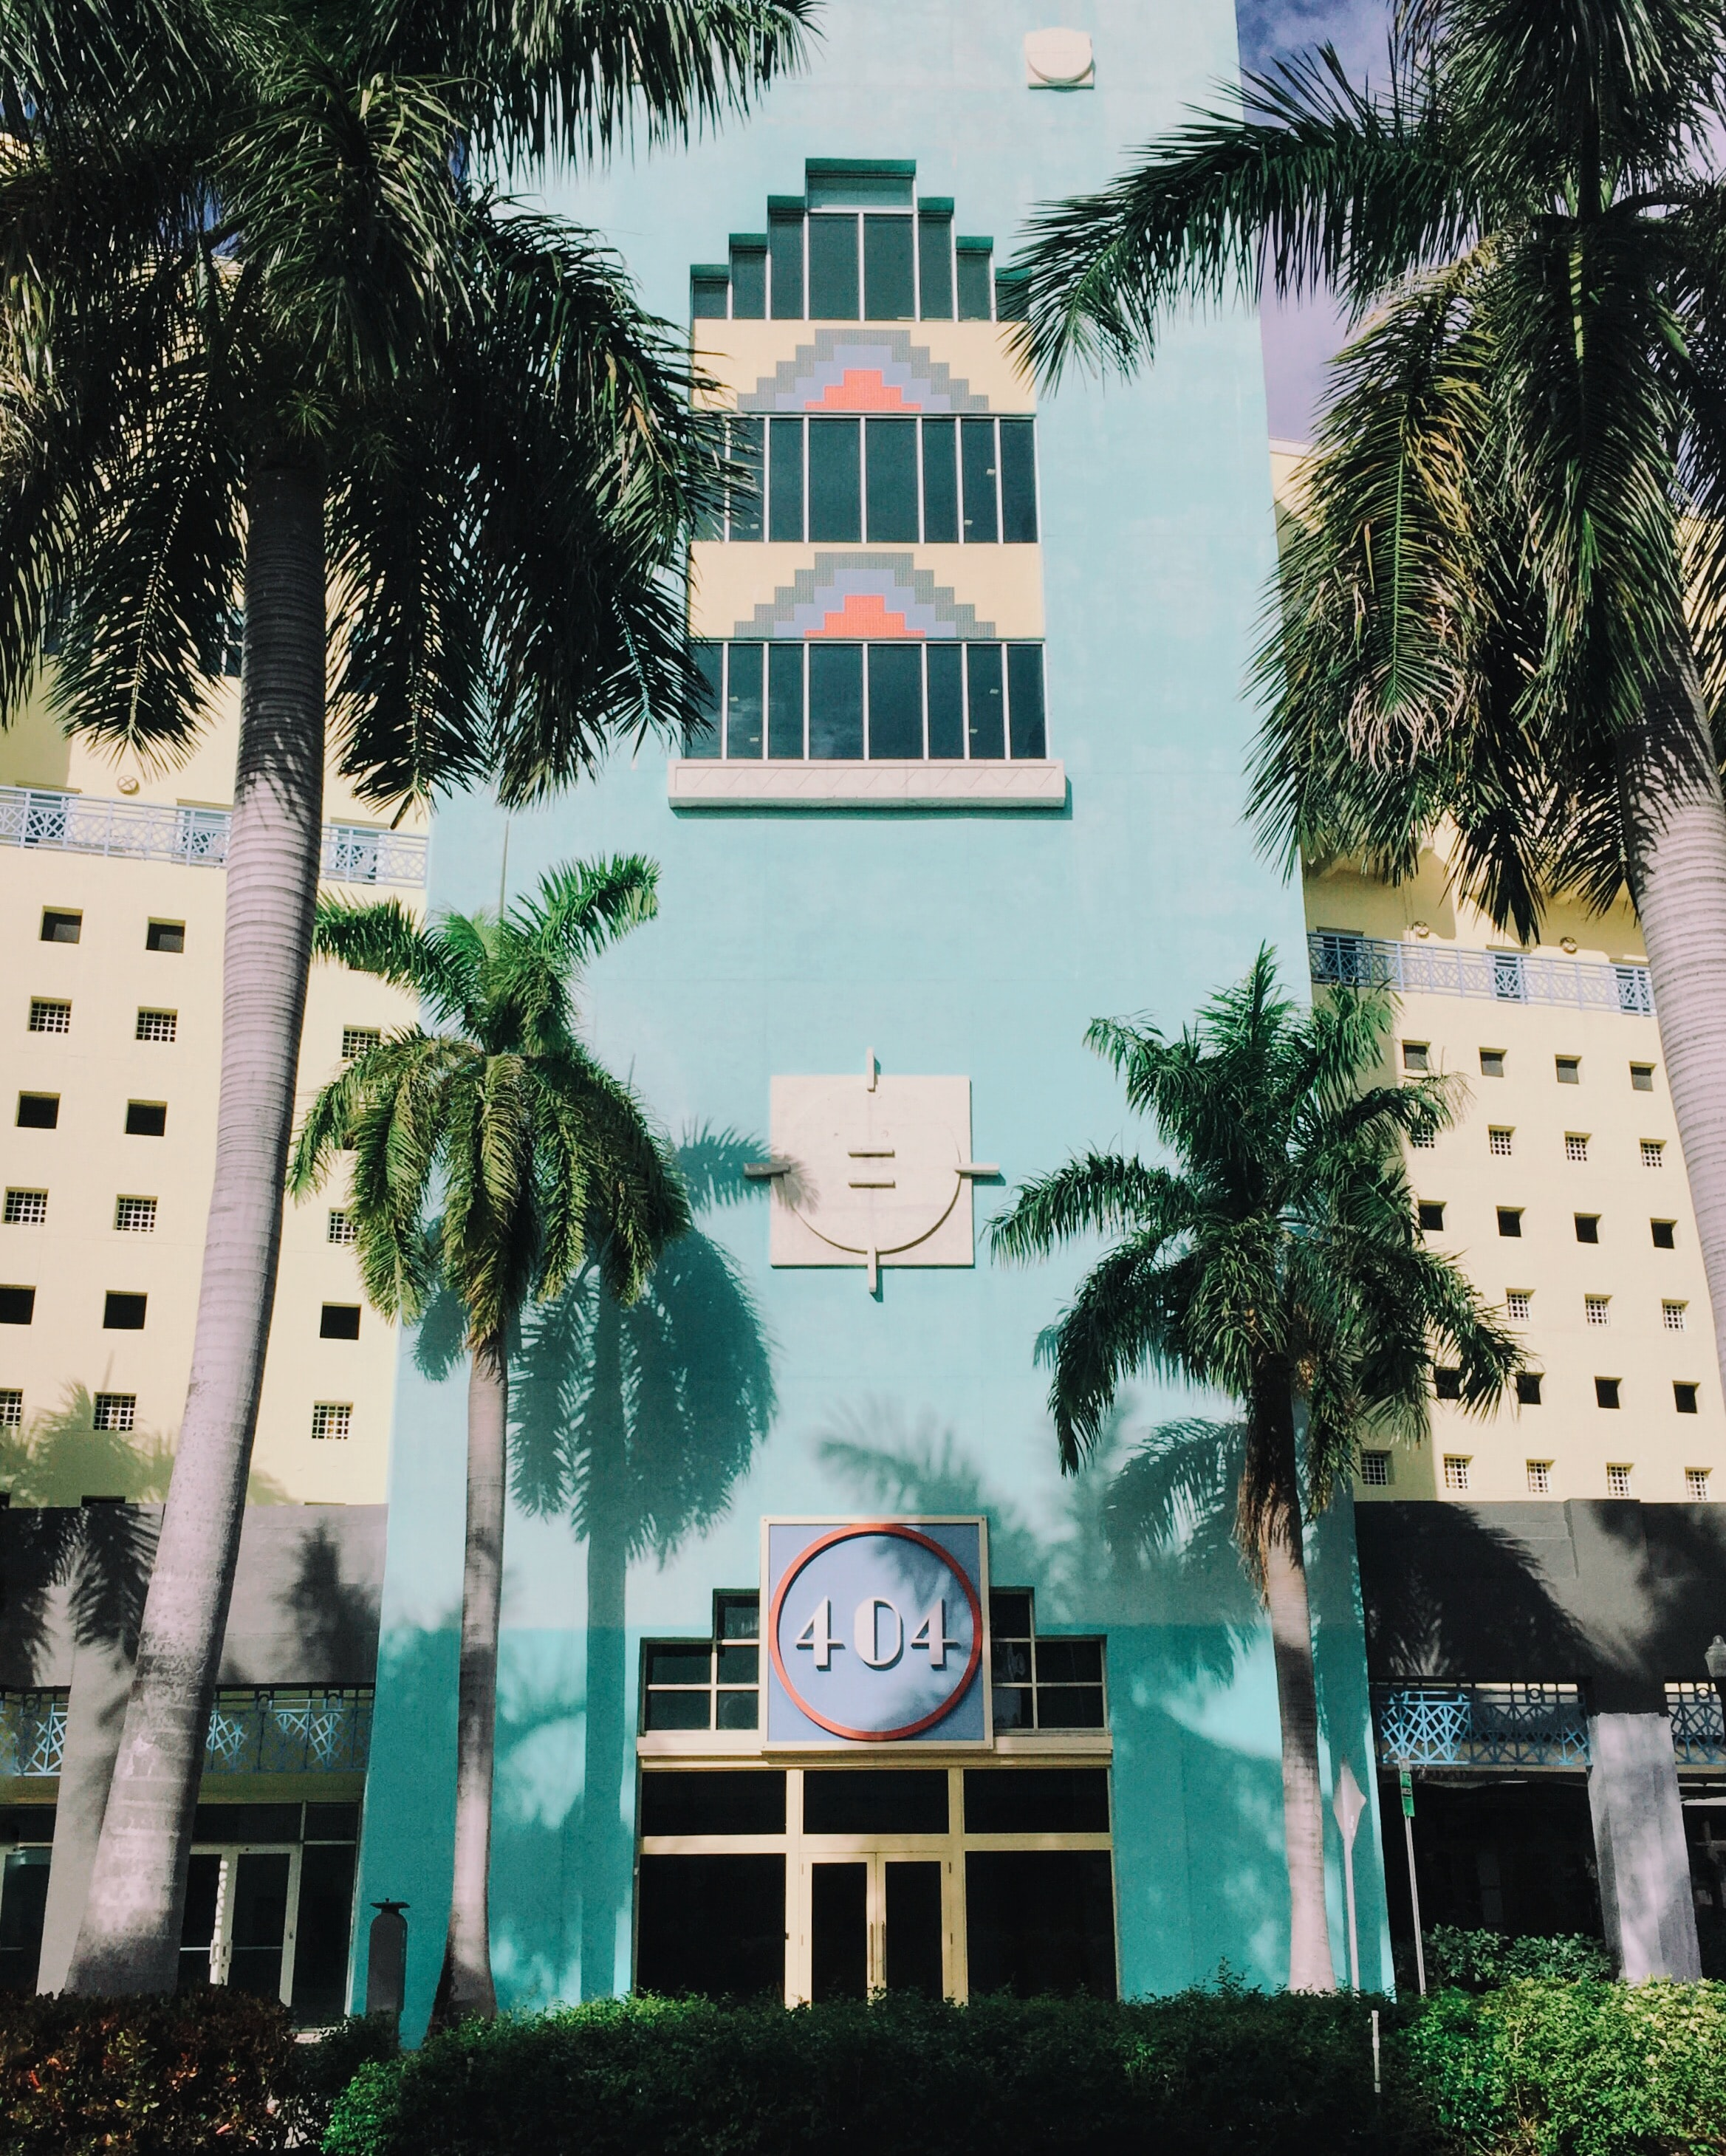 blue 404 concrete building with coconut trees in frontt